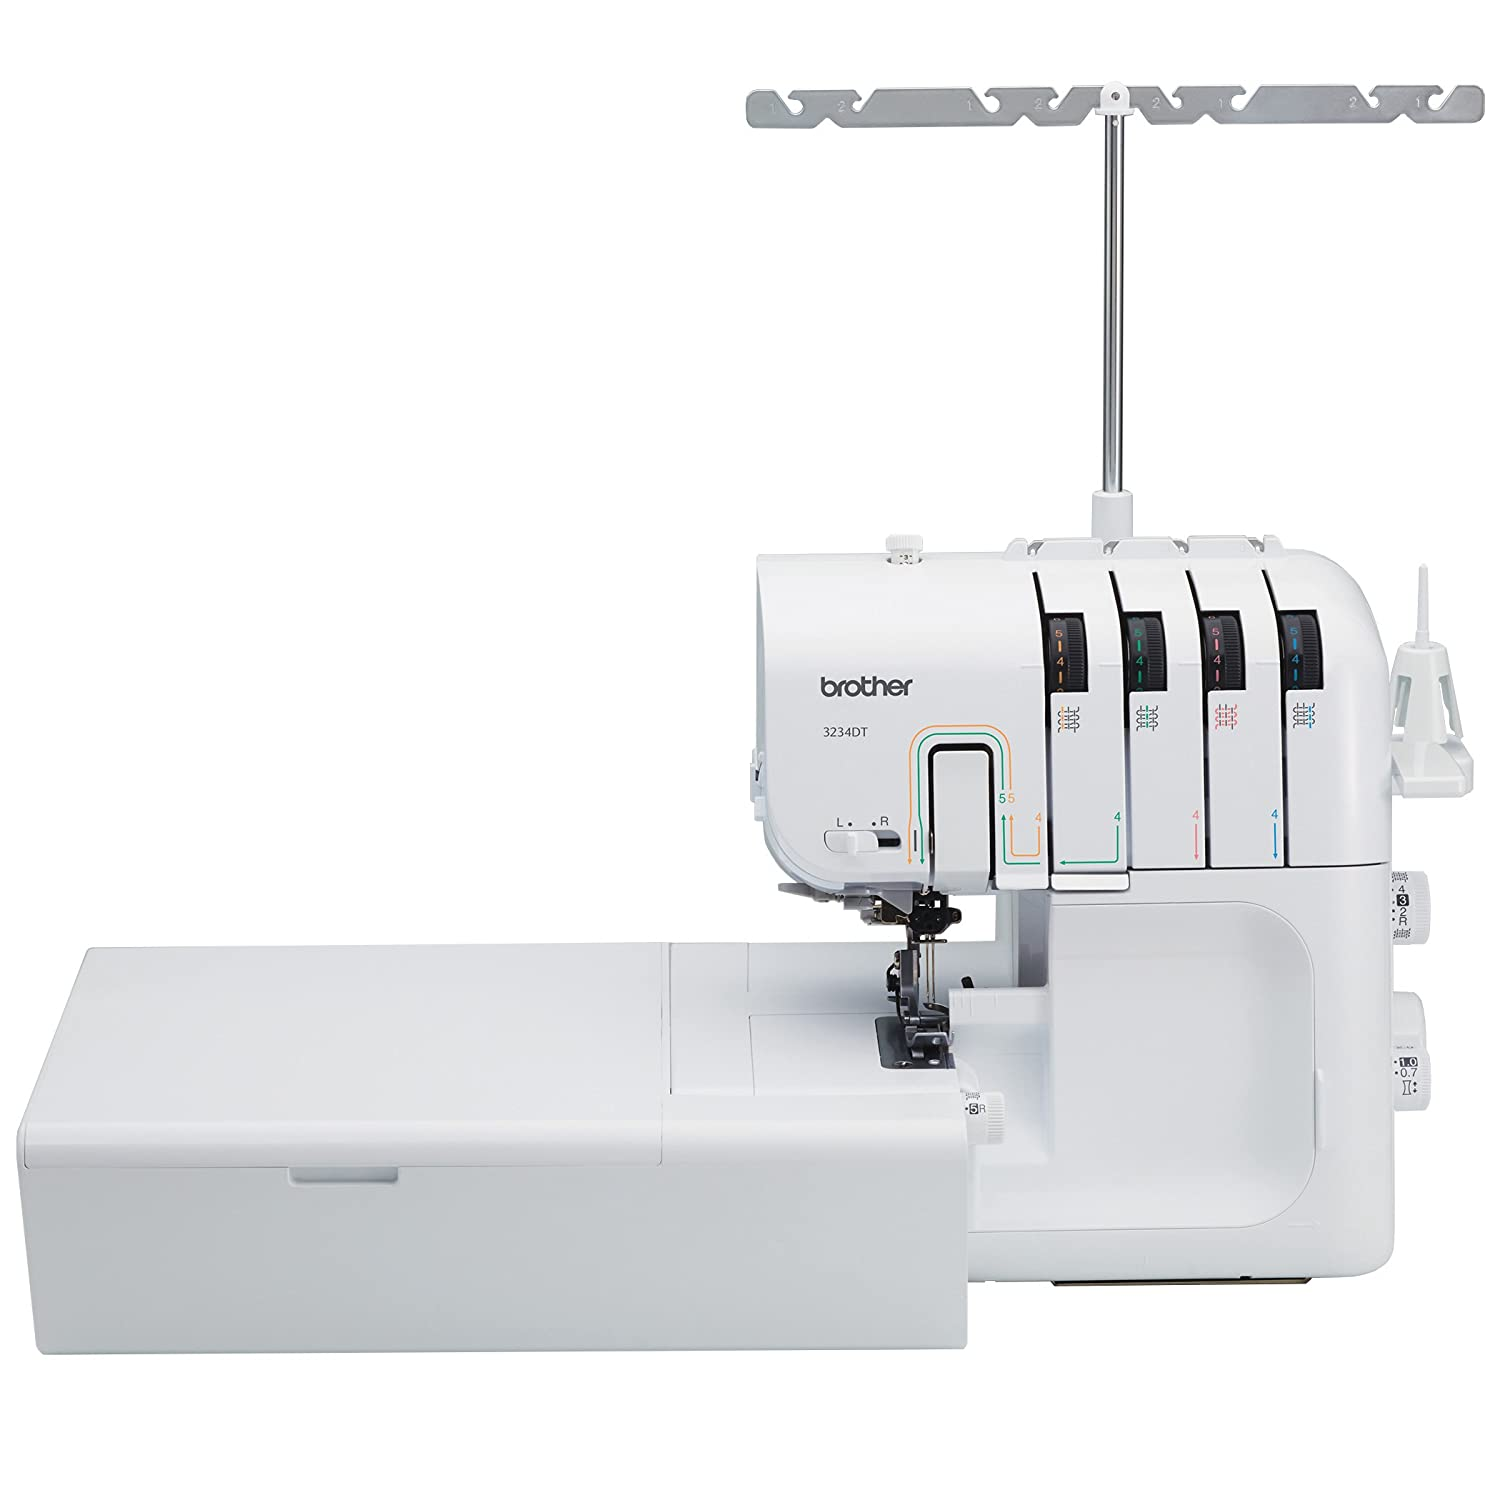 Top 5 Best Serger For Knits (2019 Reviews) 1